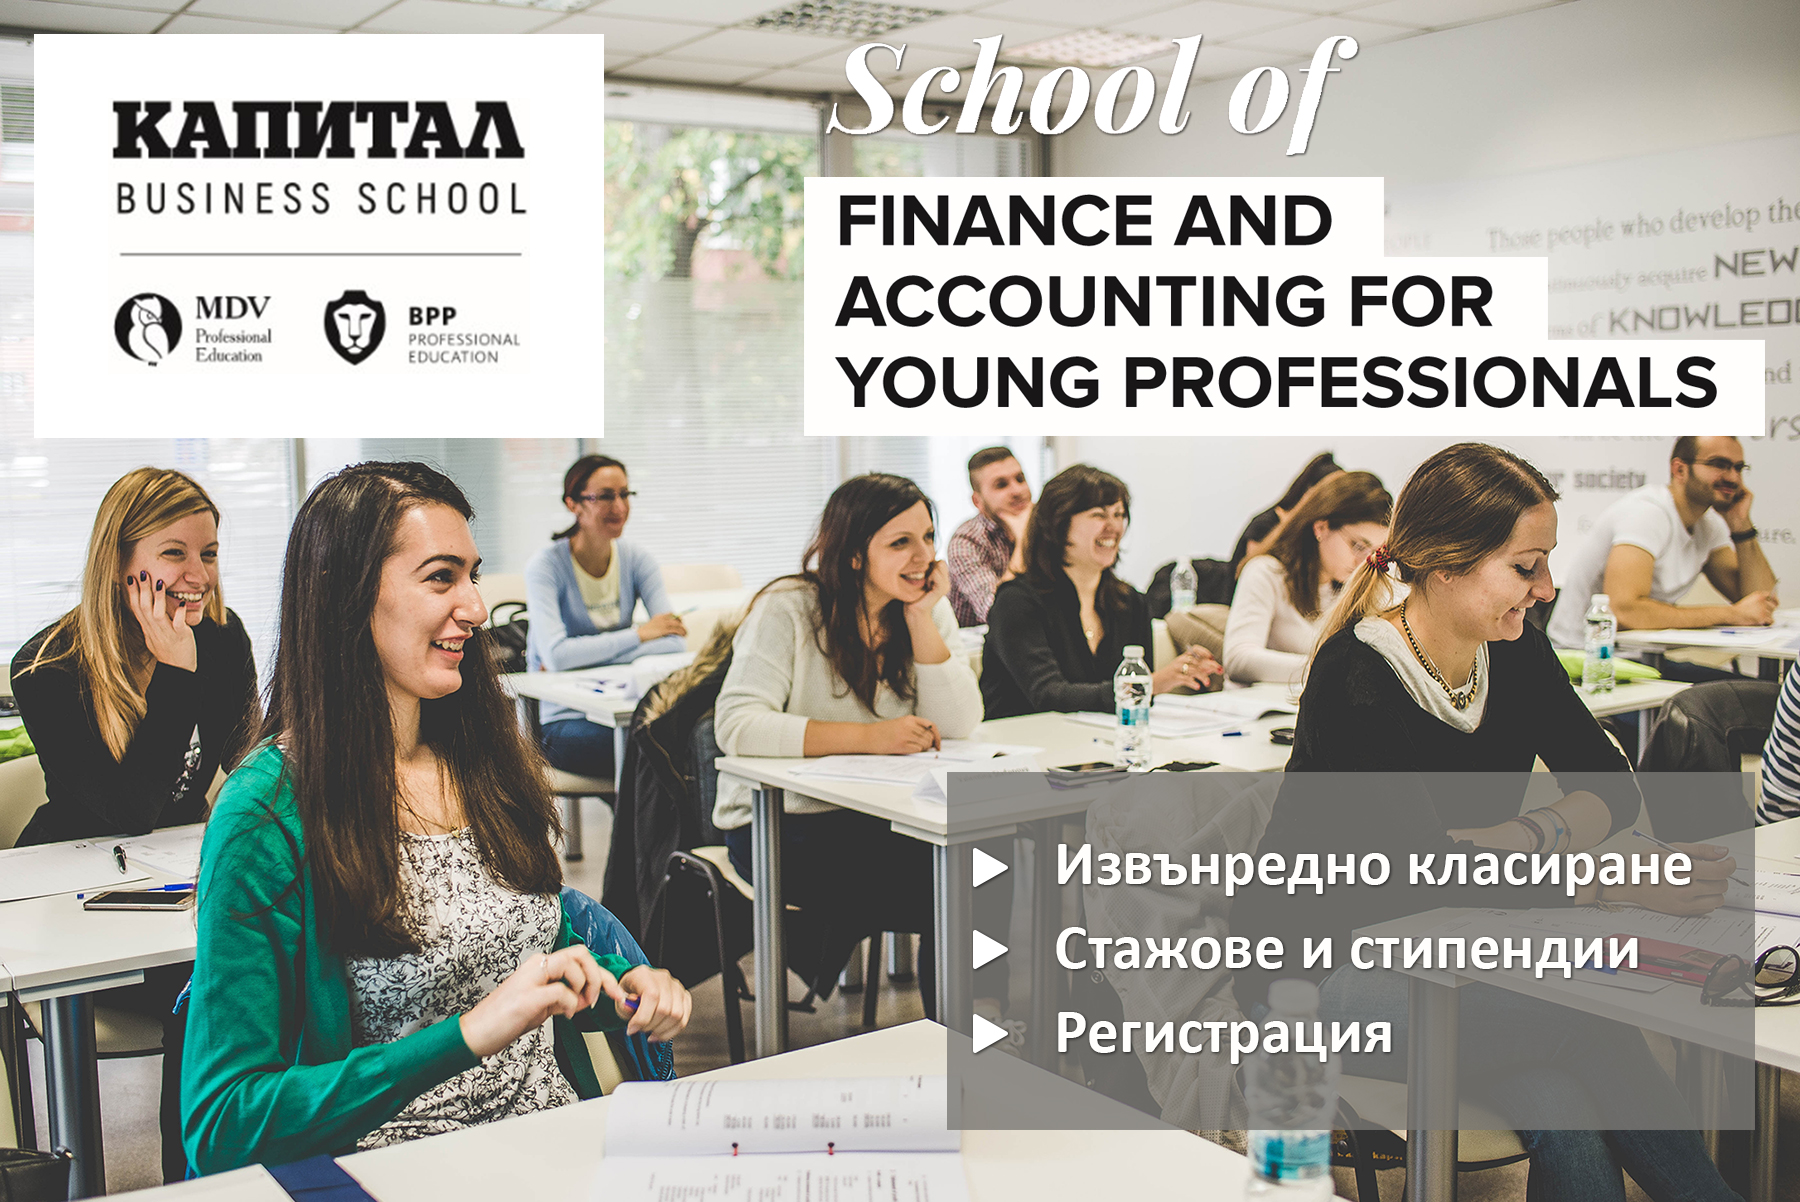 School of finance and accounting for young professionals